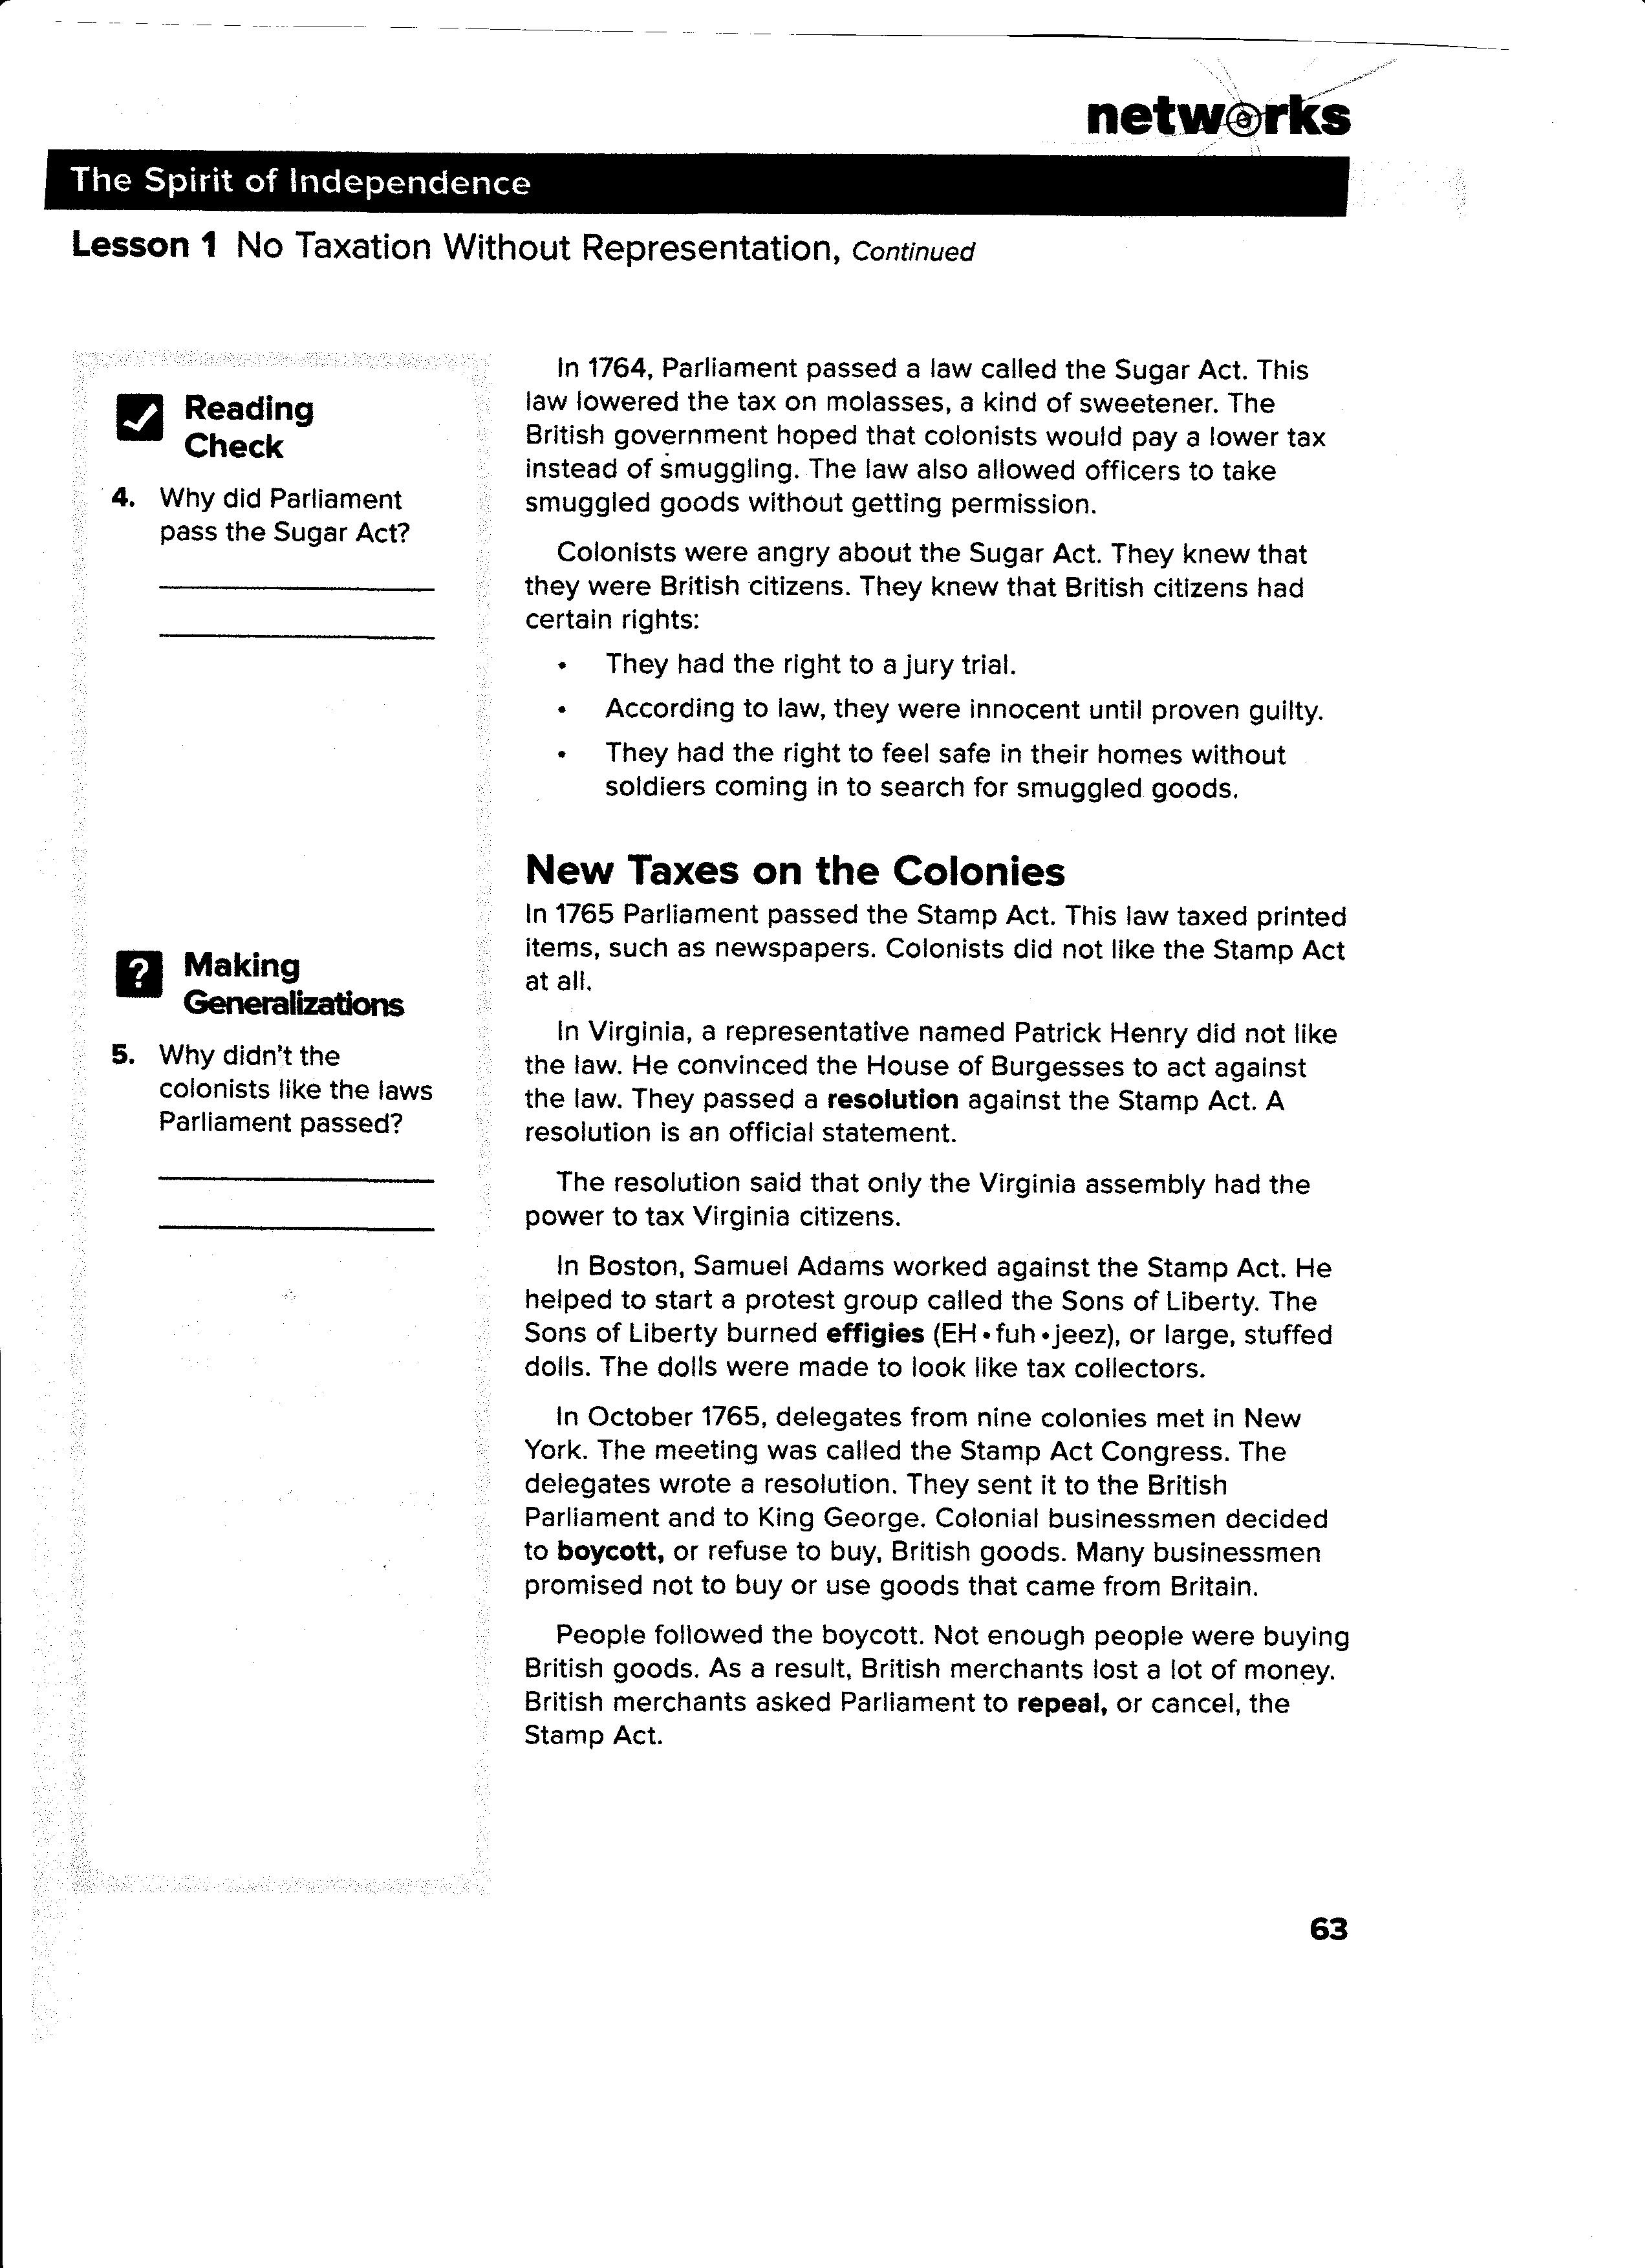 obregon jose notes assignments lesson 1 no taxation out representation page 62